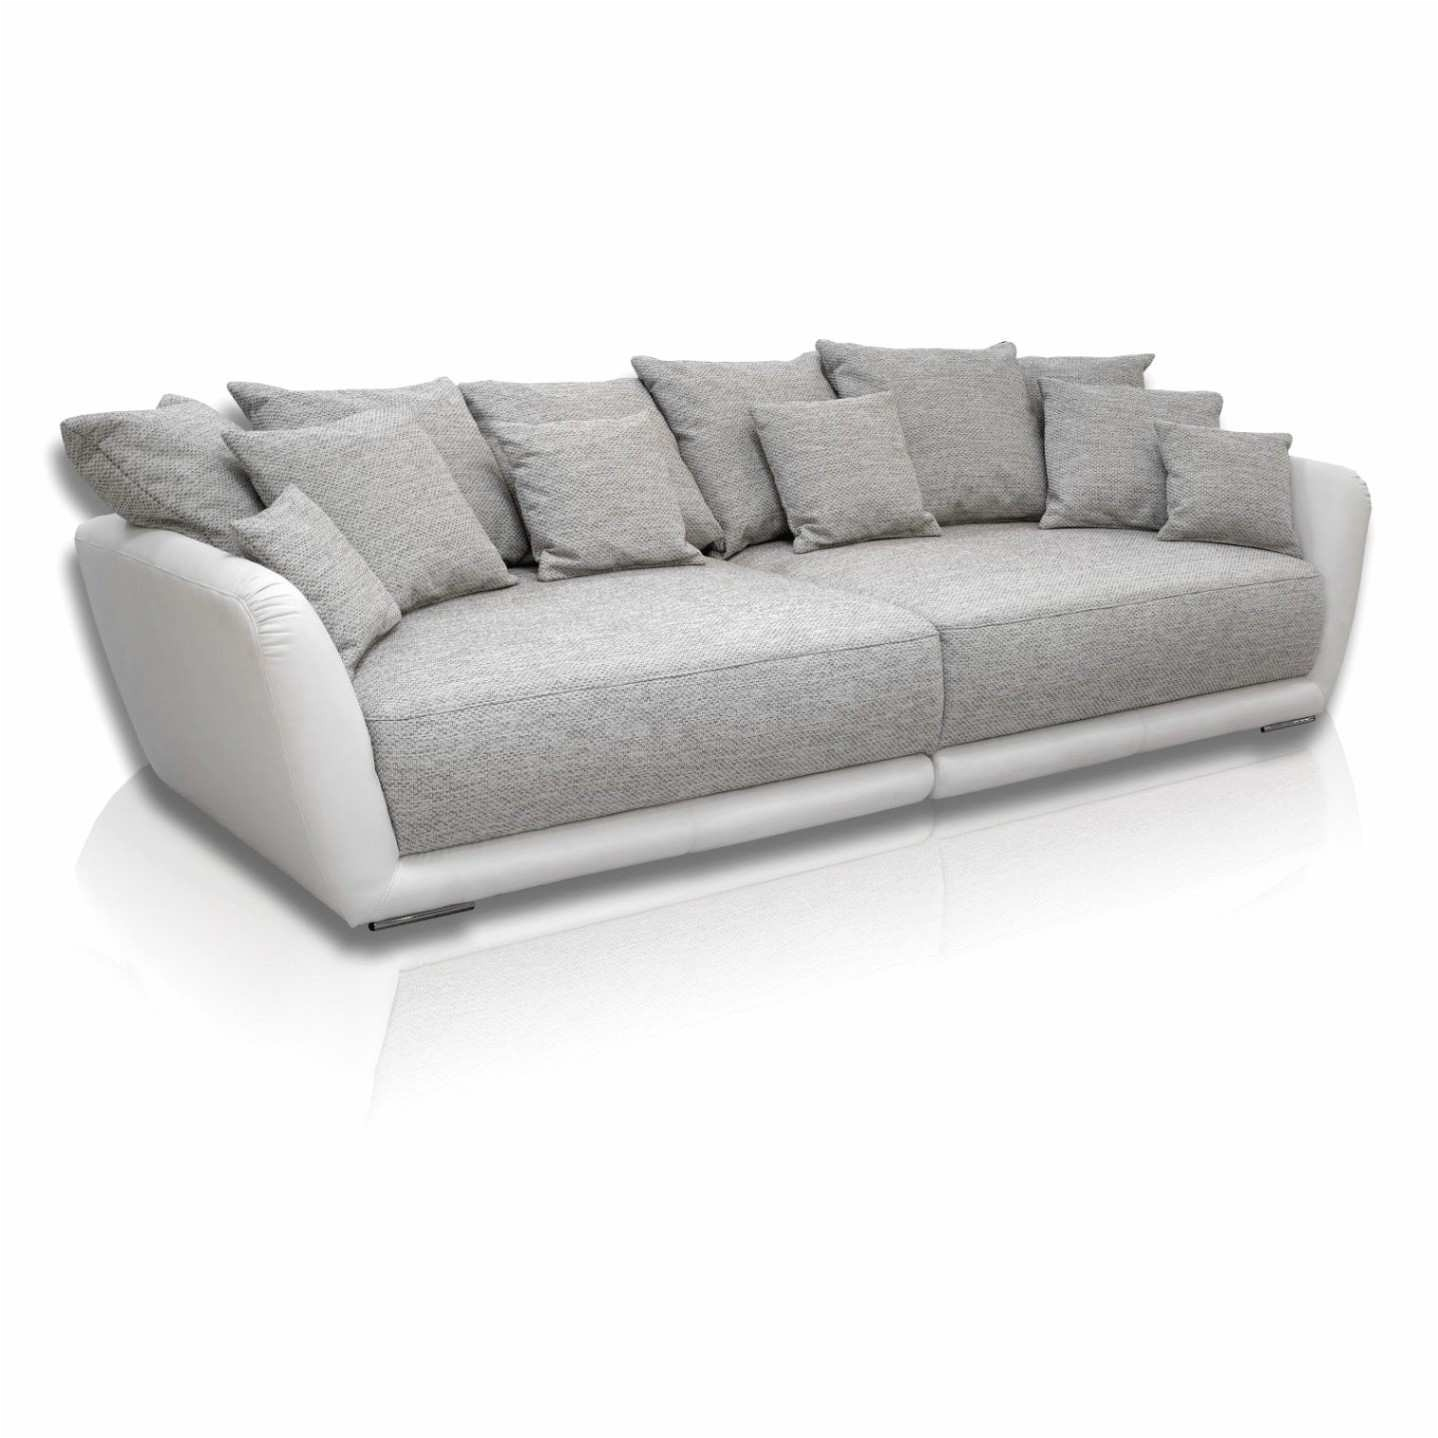 41 Awesome Cheap Sleeper sofas for Sale Affordable